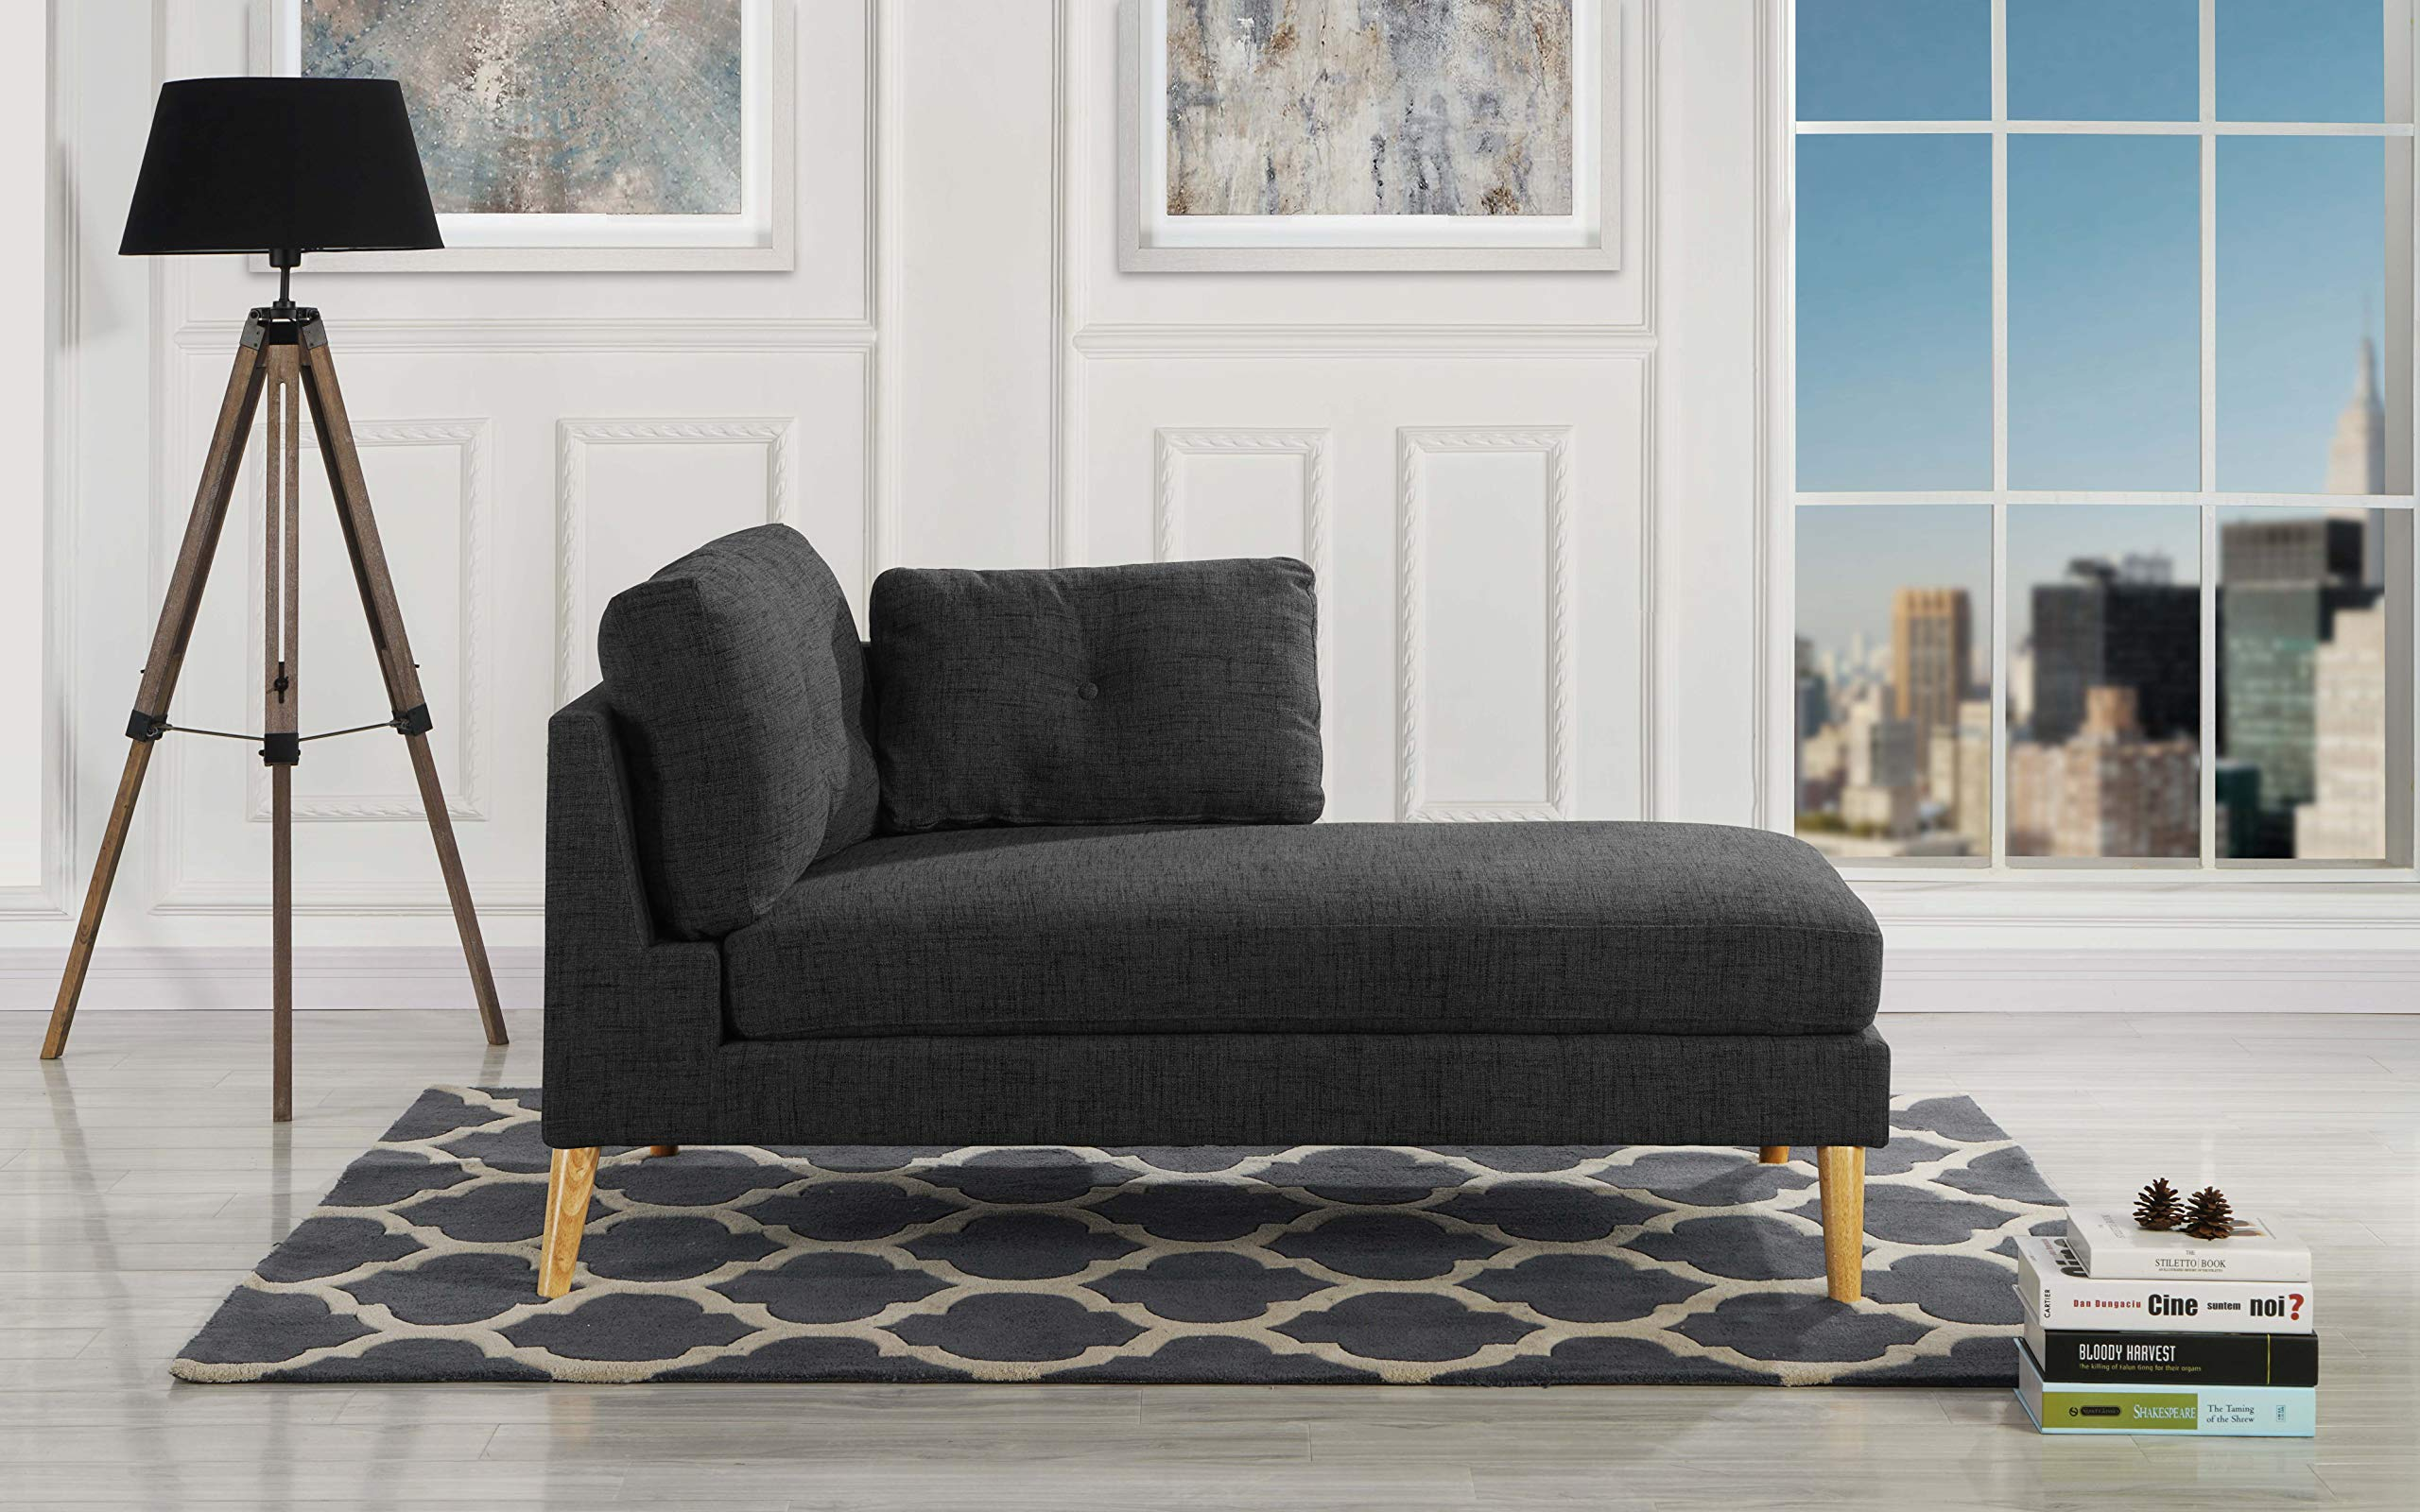 Modern Upholstered 59.4'' inch Linen Chaise Lounge (Black) by Casa Andrea